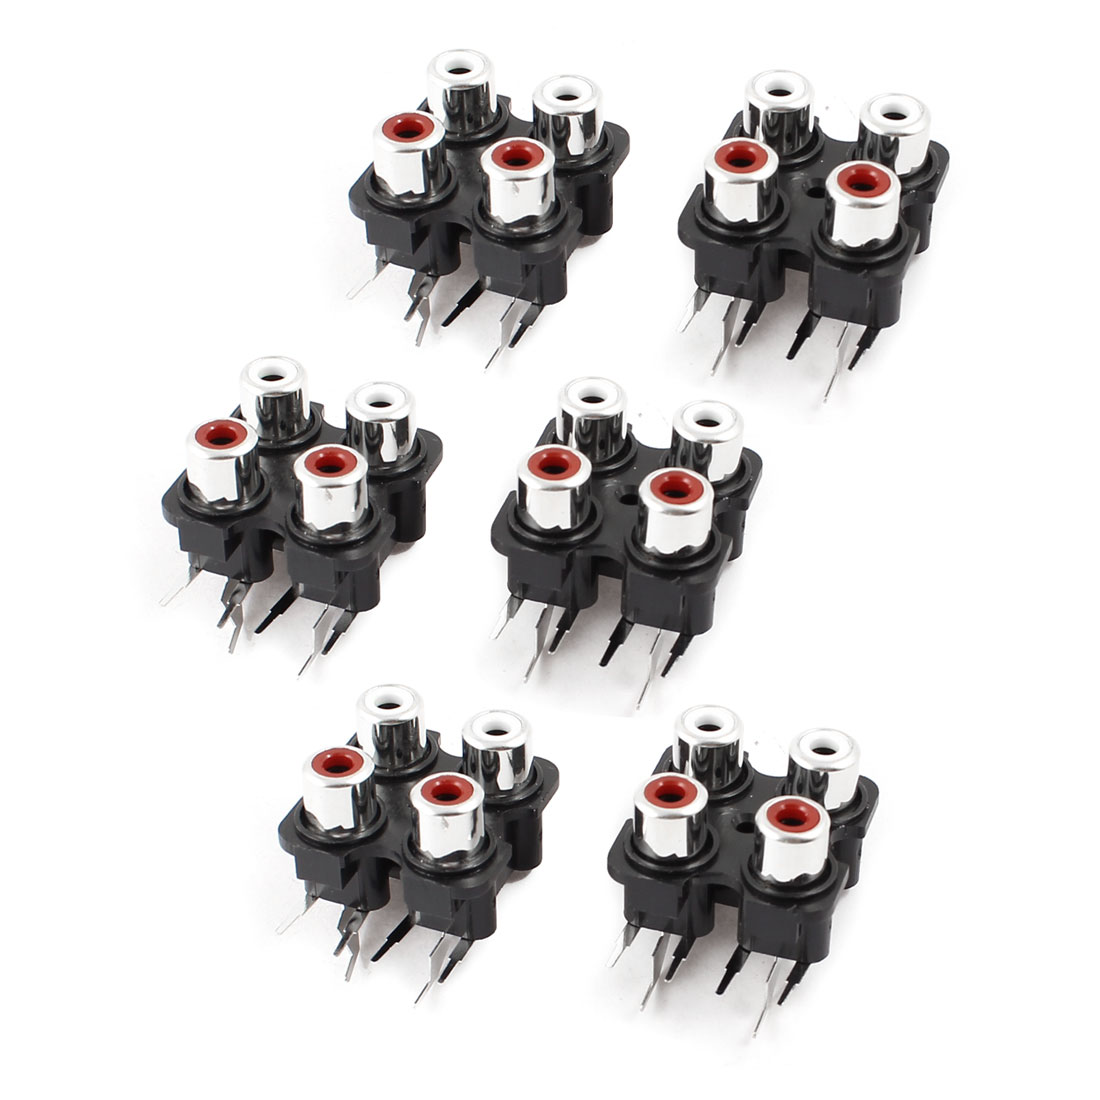 6 x PCB Mount AV Concentric Outlet 4 RCA Female Socket Jack Connector Board